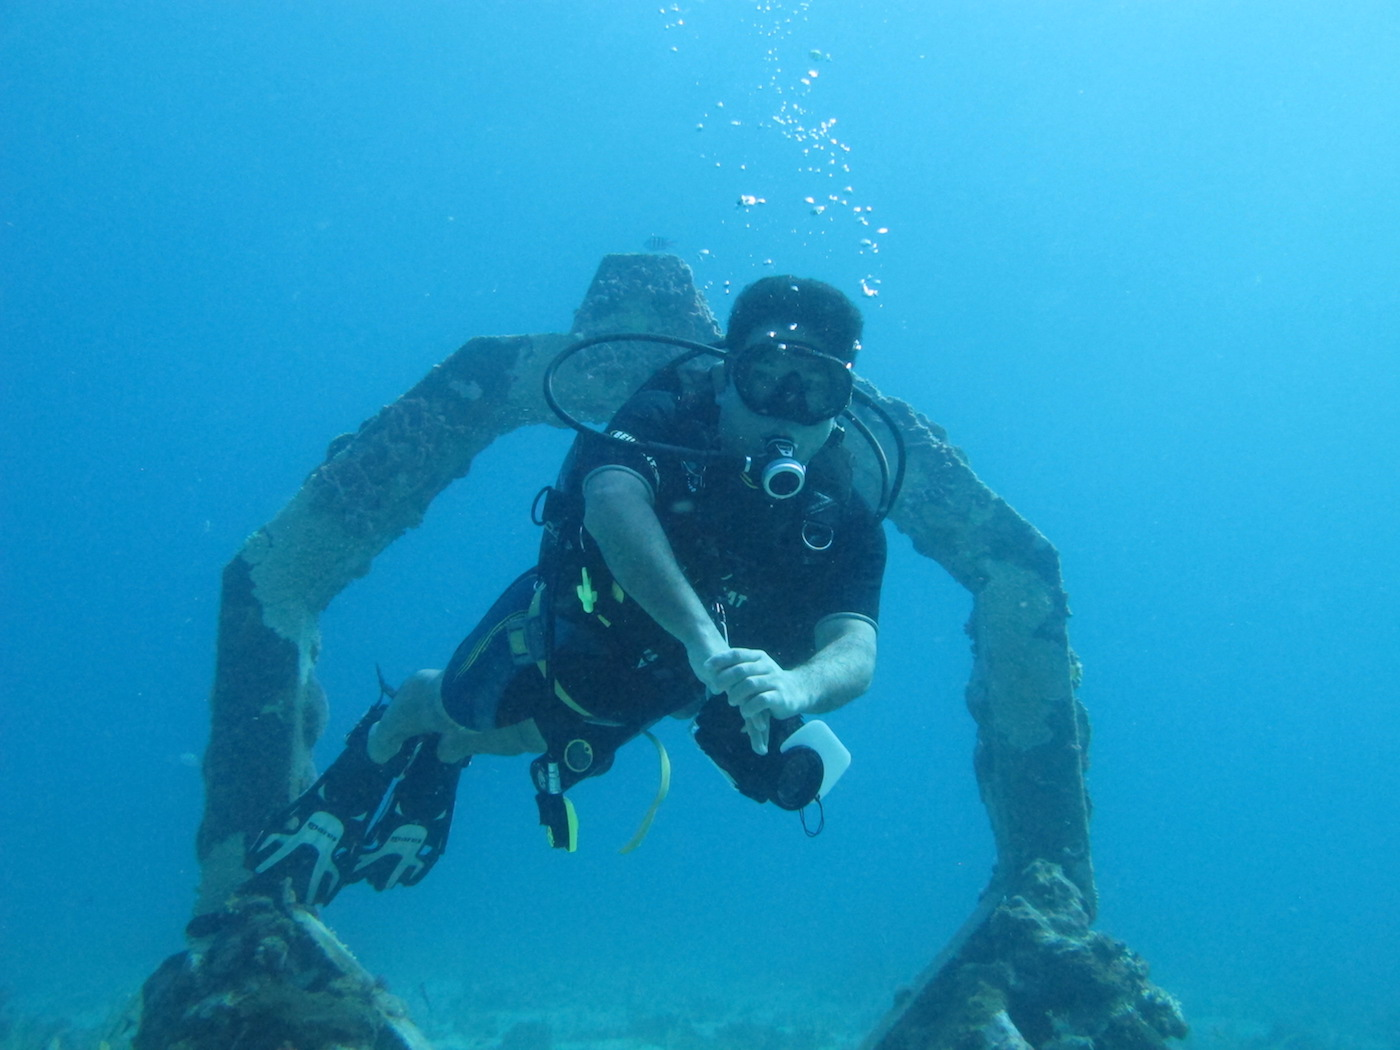 MUSA-Underwater-Museum-Snorkeling-Scuba-Diving-Tours-Isla-Mujeres-Carey-Dive-Center-6